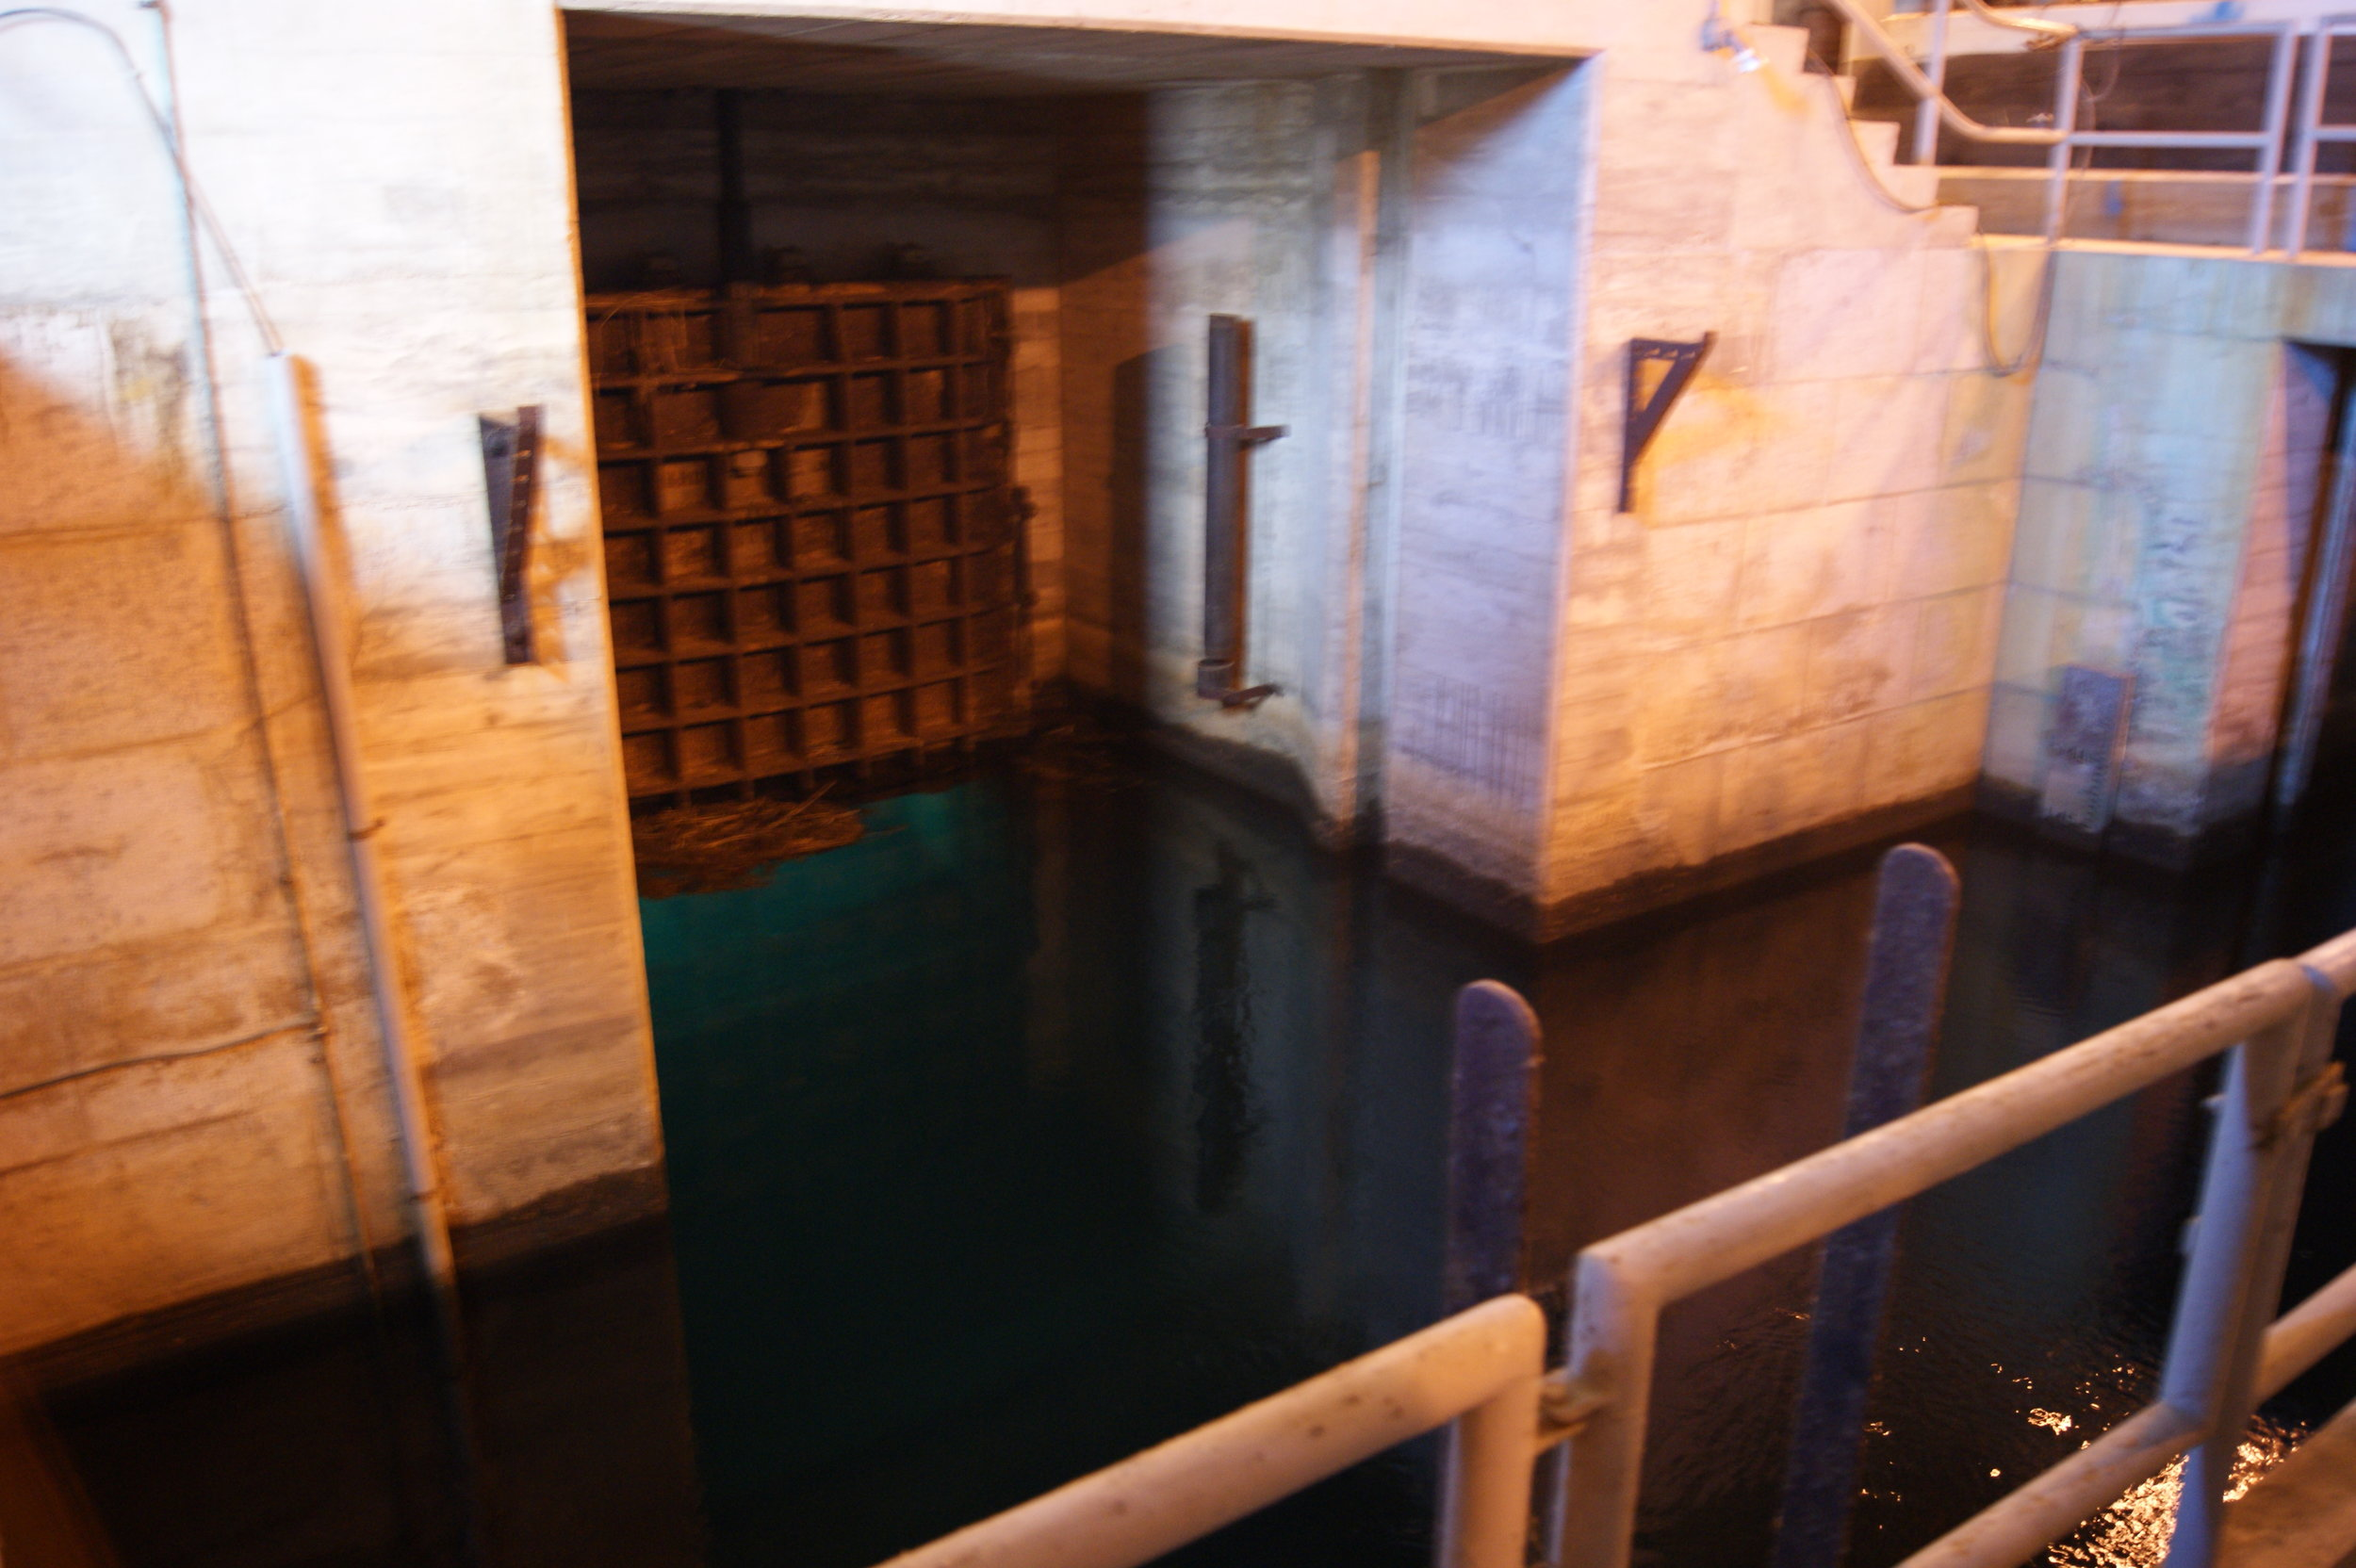 Millions of gallons of water pass beneath the intake gate every day. Photo: Elliot Carter